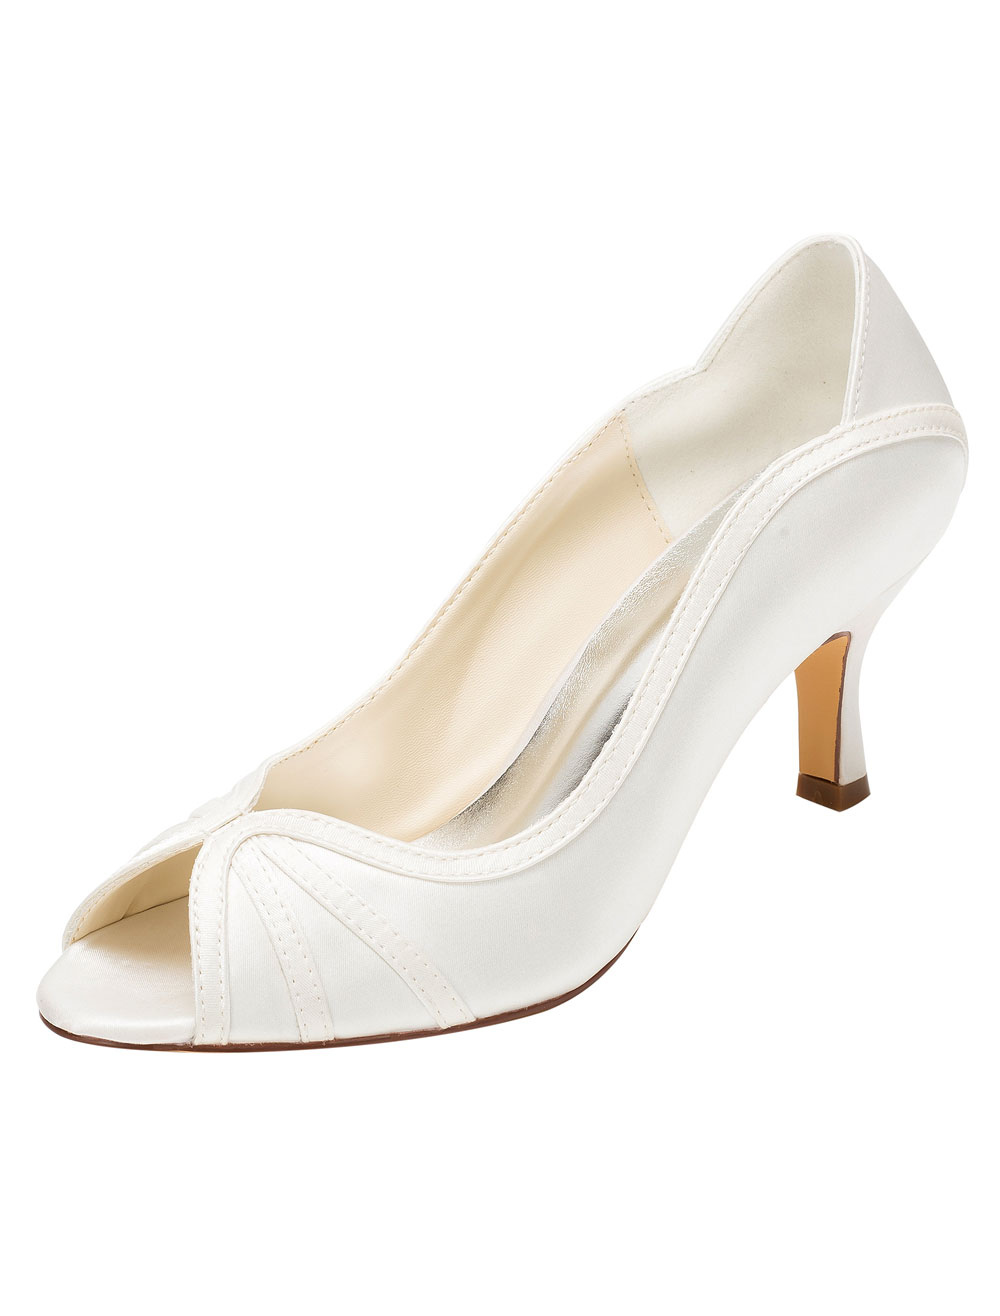 Ivory Wedding Shoes Peep High Heel Pumps Slip-on Bridal Shoes